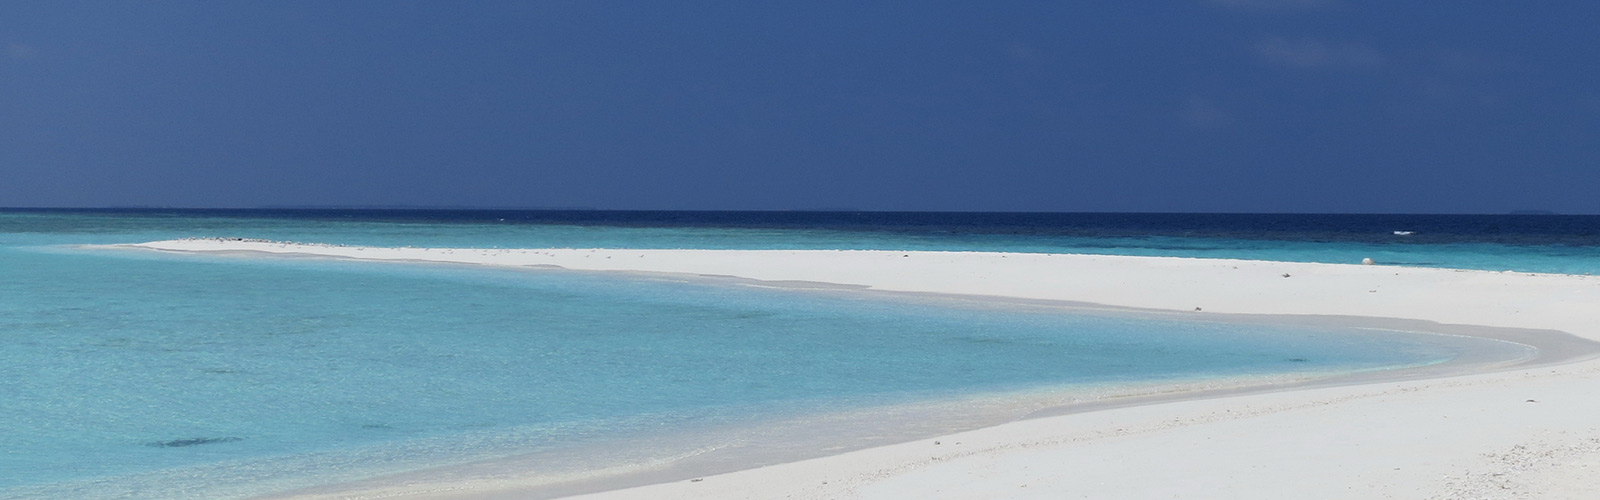 Maldives Excursions Private Sandbank